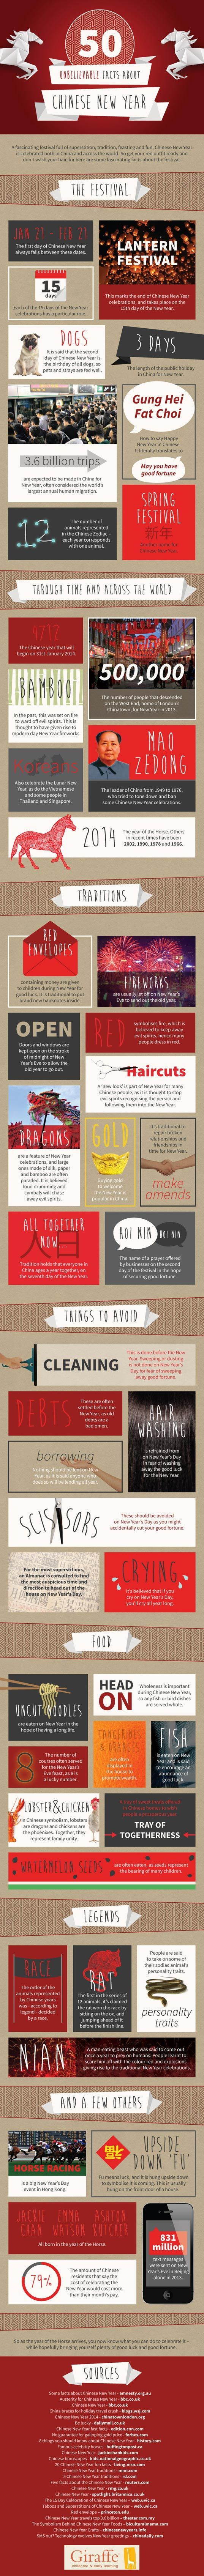 Happy Chinese New Year everyone! You may be familiar with traditions like dragon dancers, gifts in red envelopes and fireworks – but did you know that you should avoid washing your hair and cleaning so that you don't sweep away good fortune? NeoMam Studios just launched a new infographic that shares 50 facts about Chinese New Year.